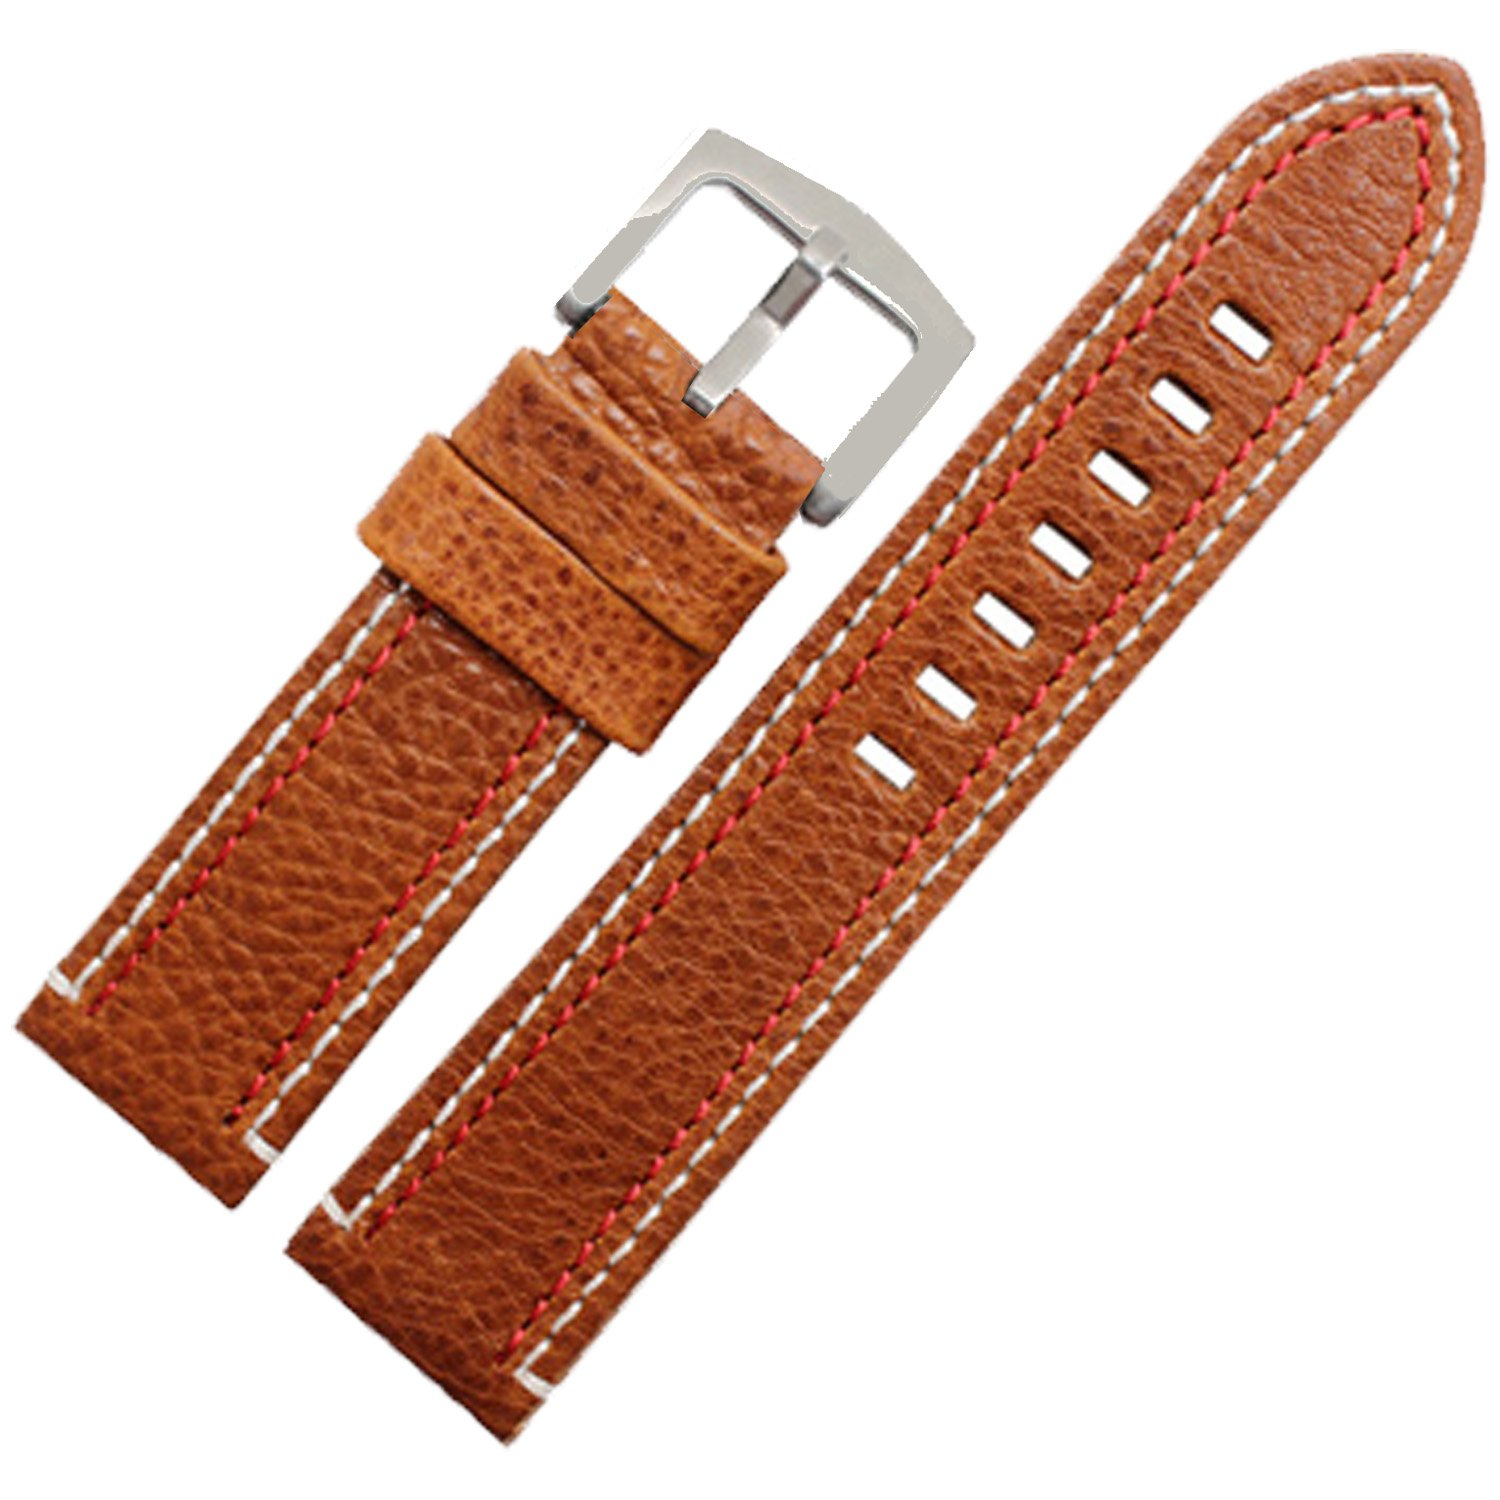 23 mm Brown GenuineレザーWatch Strap Band Withホワイトレッドダブルステッチ  B076V9RP3H